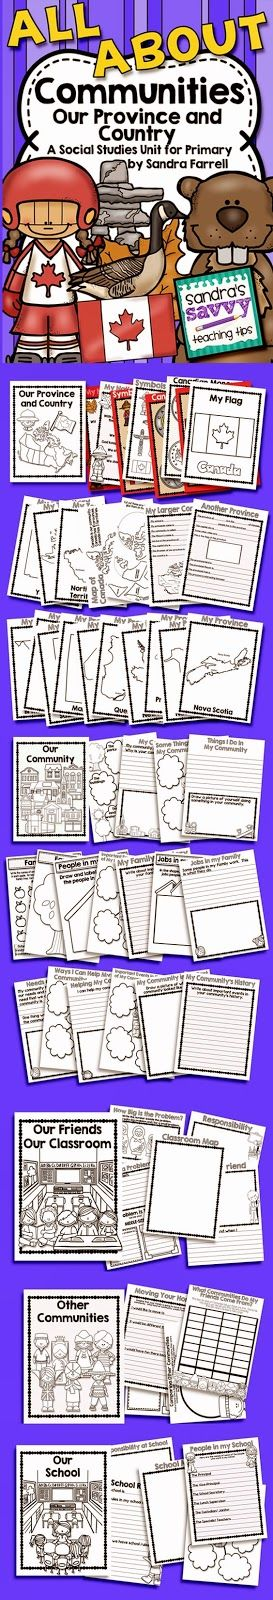 New Social Studies Unit for Grade 2 - My Community